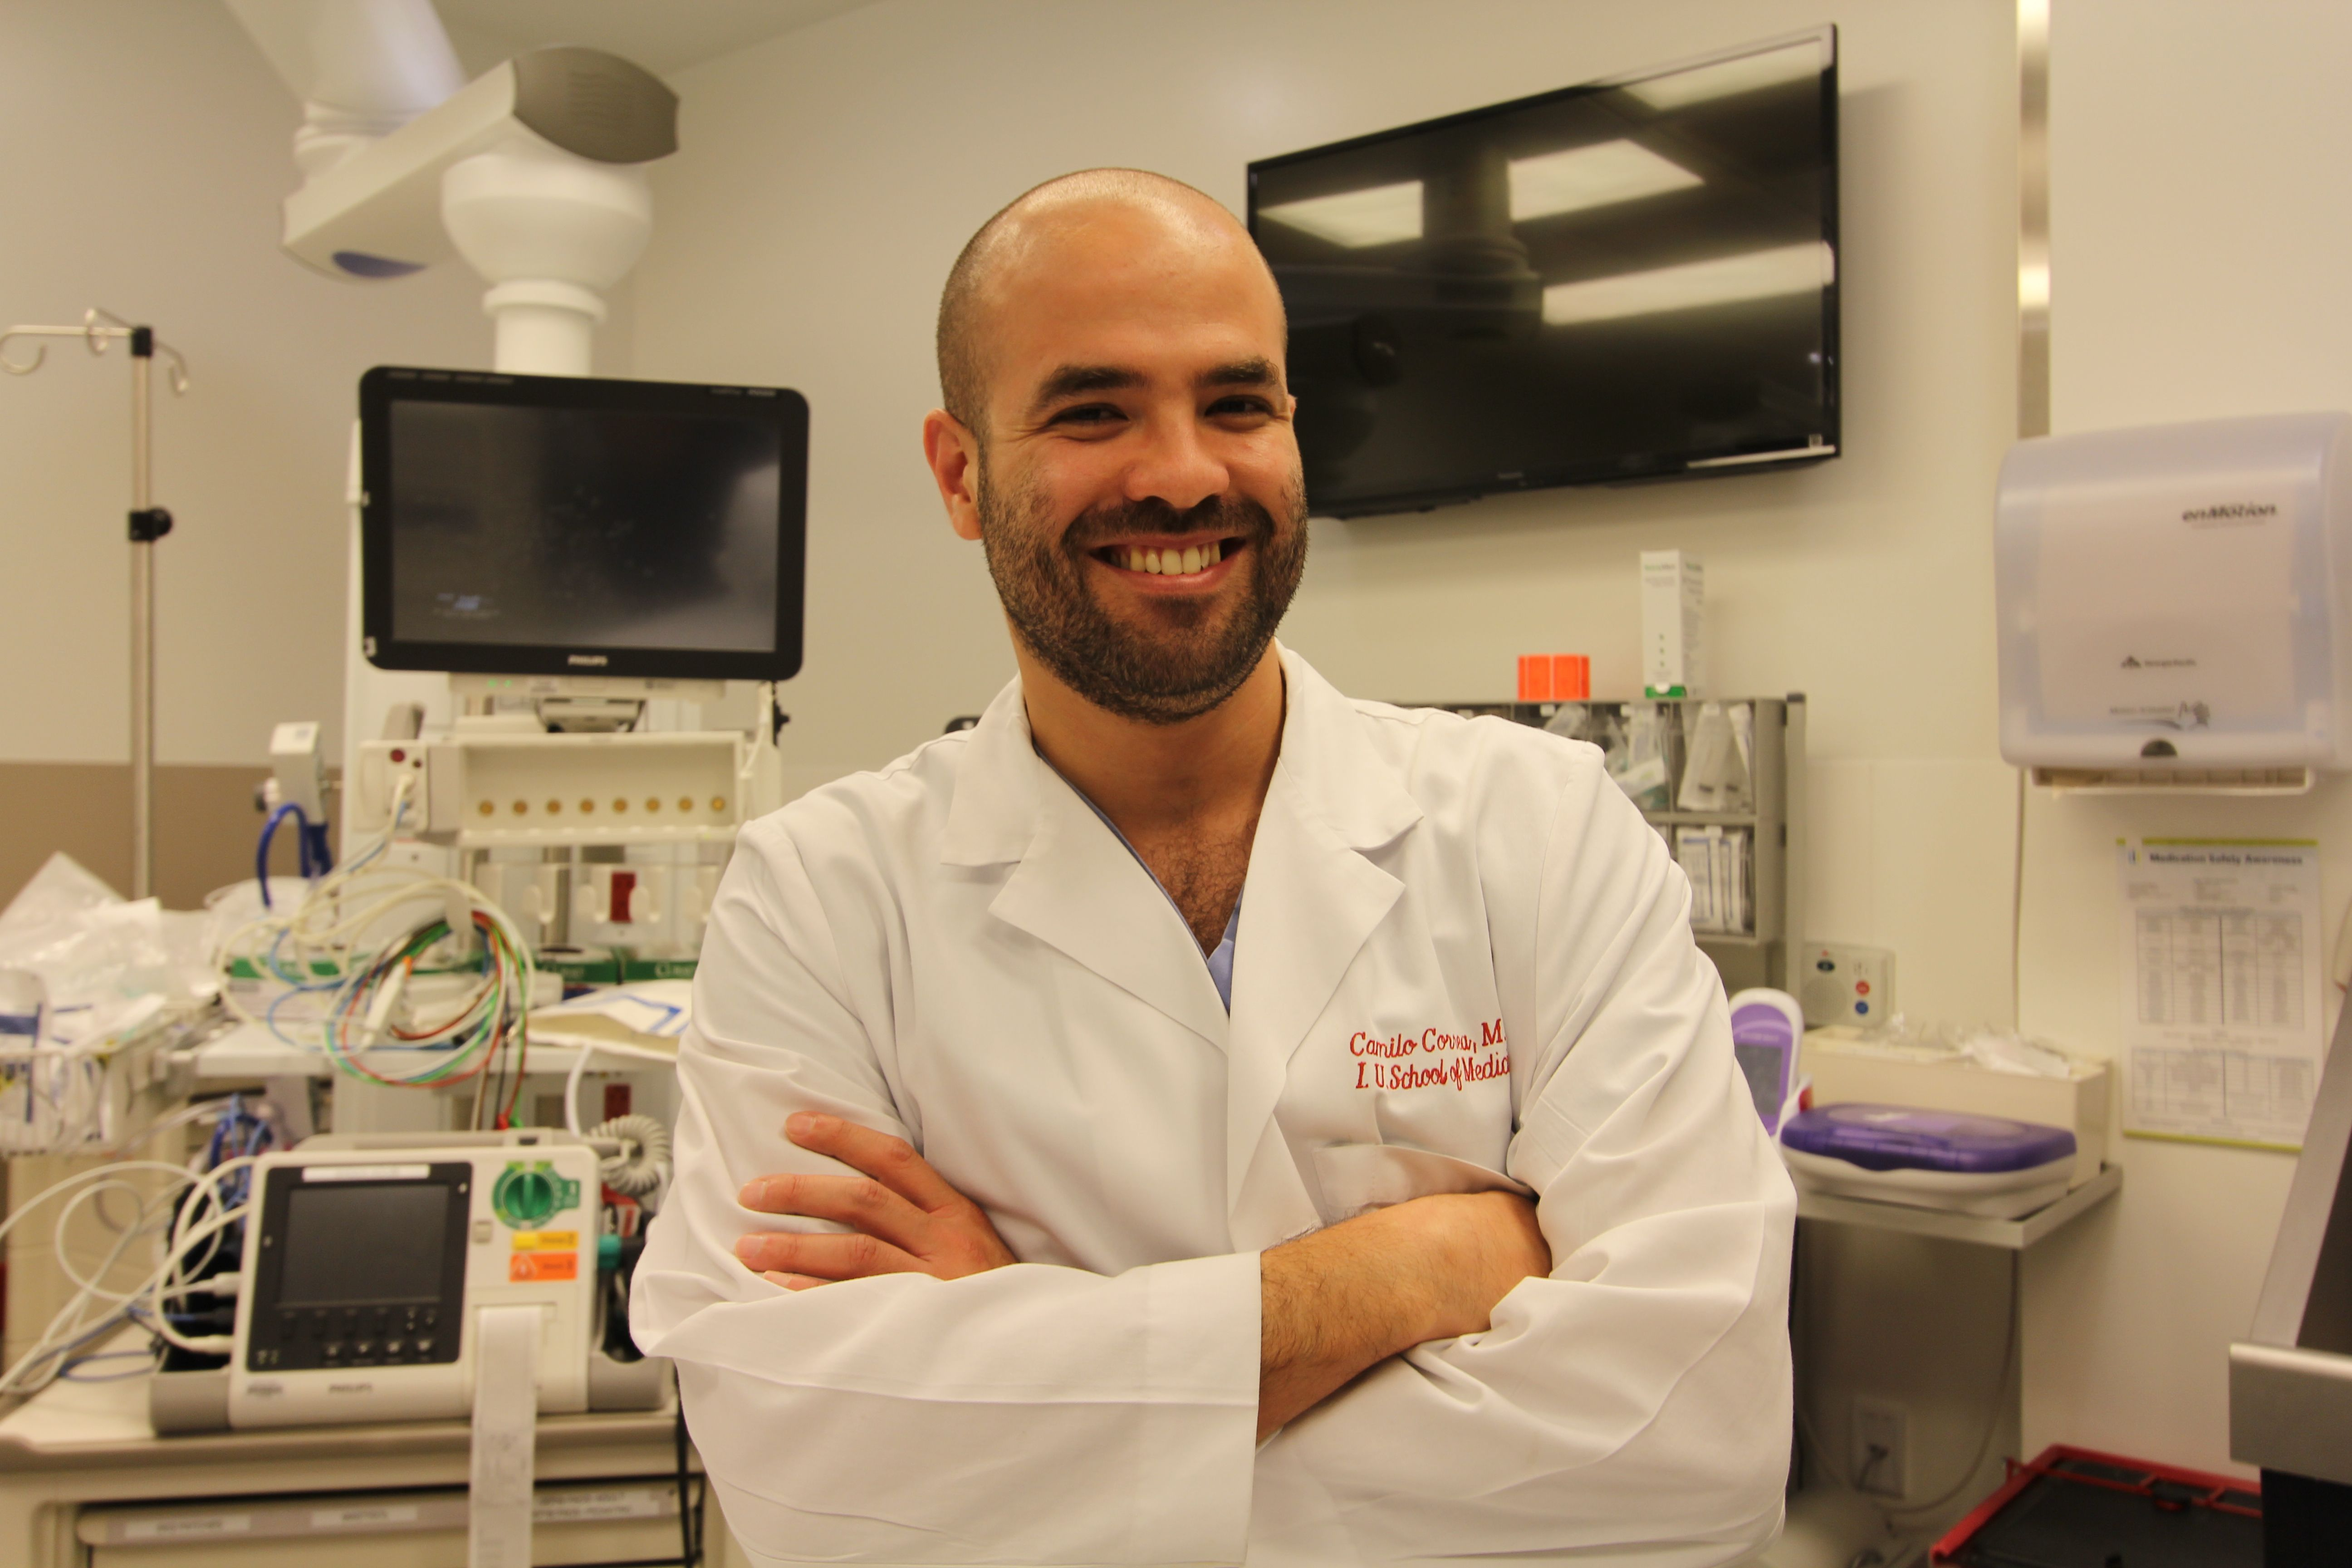 Meet Dr. Camilo Correa, trauma chief resident at Eskenazi Health! http://on.fb.me/1plPA6D  Each week on #TraumaTuesday, we'd like to introduce you to staff members, physicians and residents in the Smith Level I Shock Trauma Center at Eskenazi Health. Each member of the team is a vital part of the trauma process and has his or her own unique story. Come back each week to see more faces of our specialized trauma team!